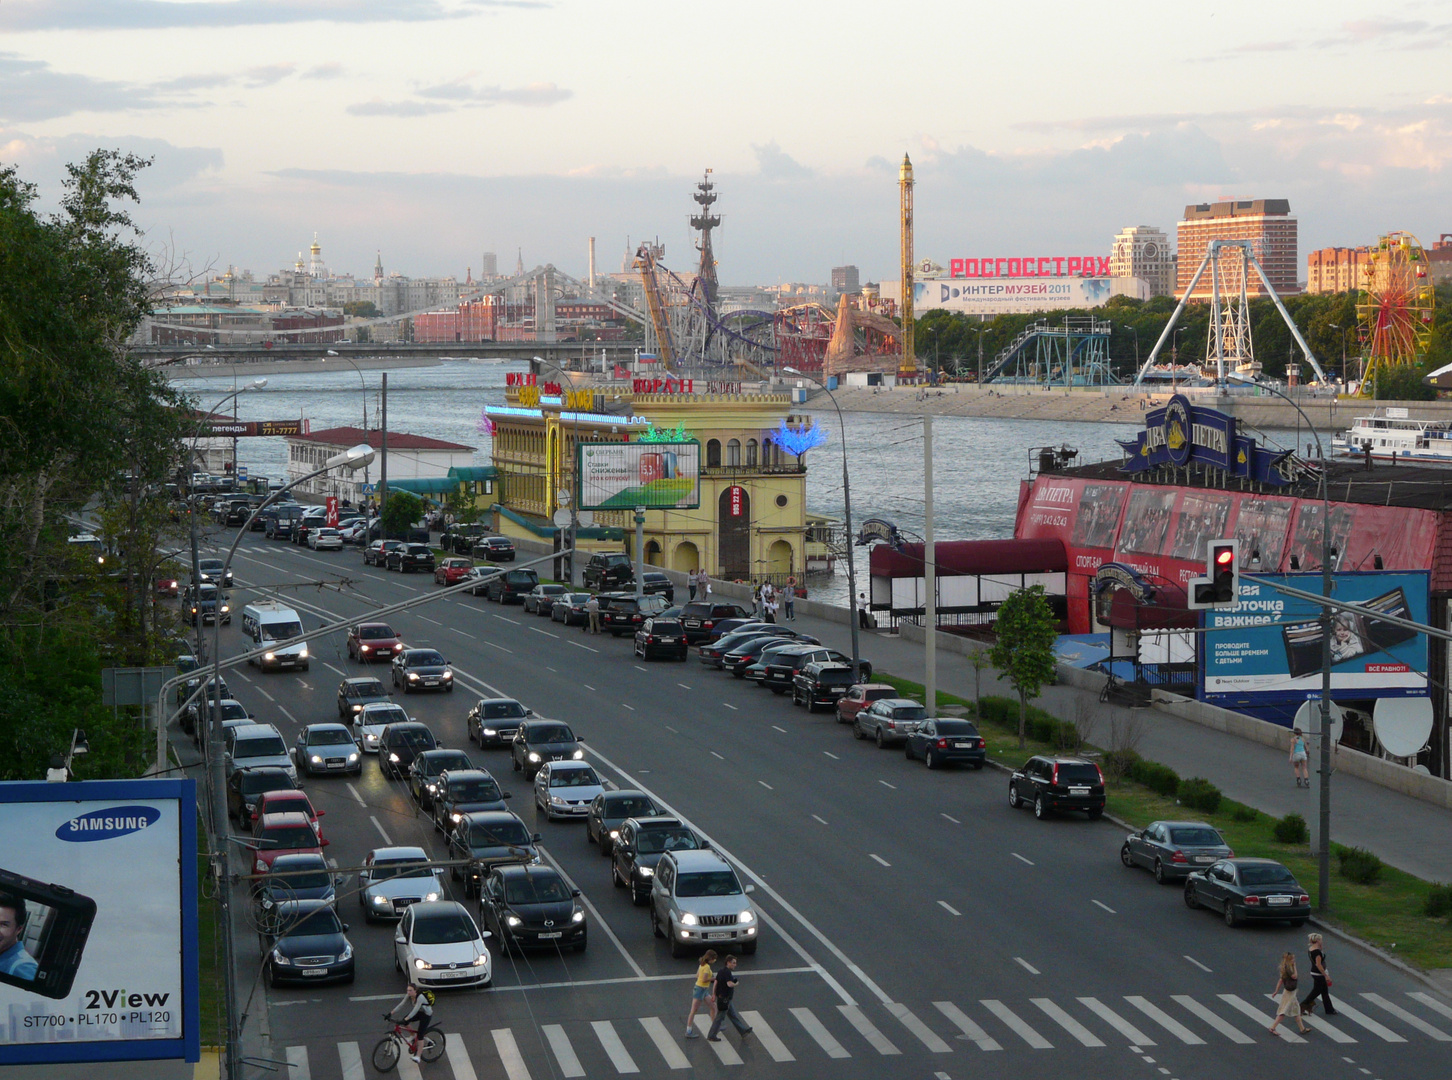 At the evening, The Moscow River in the Central Moscow